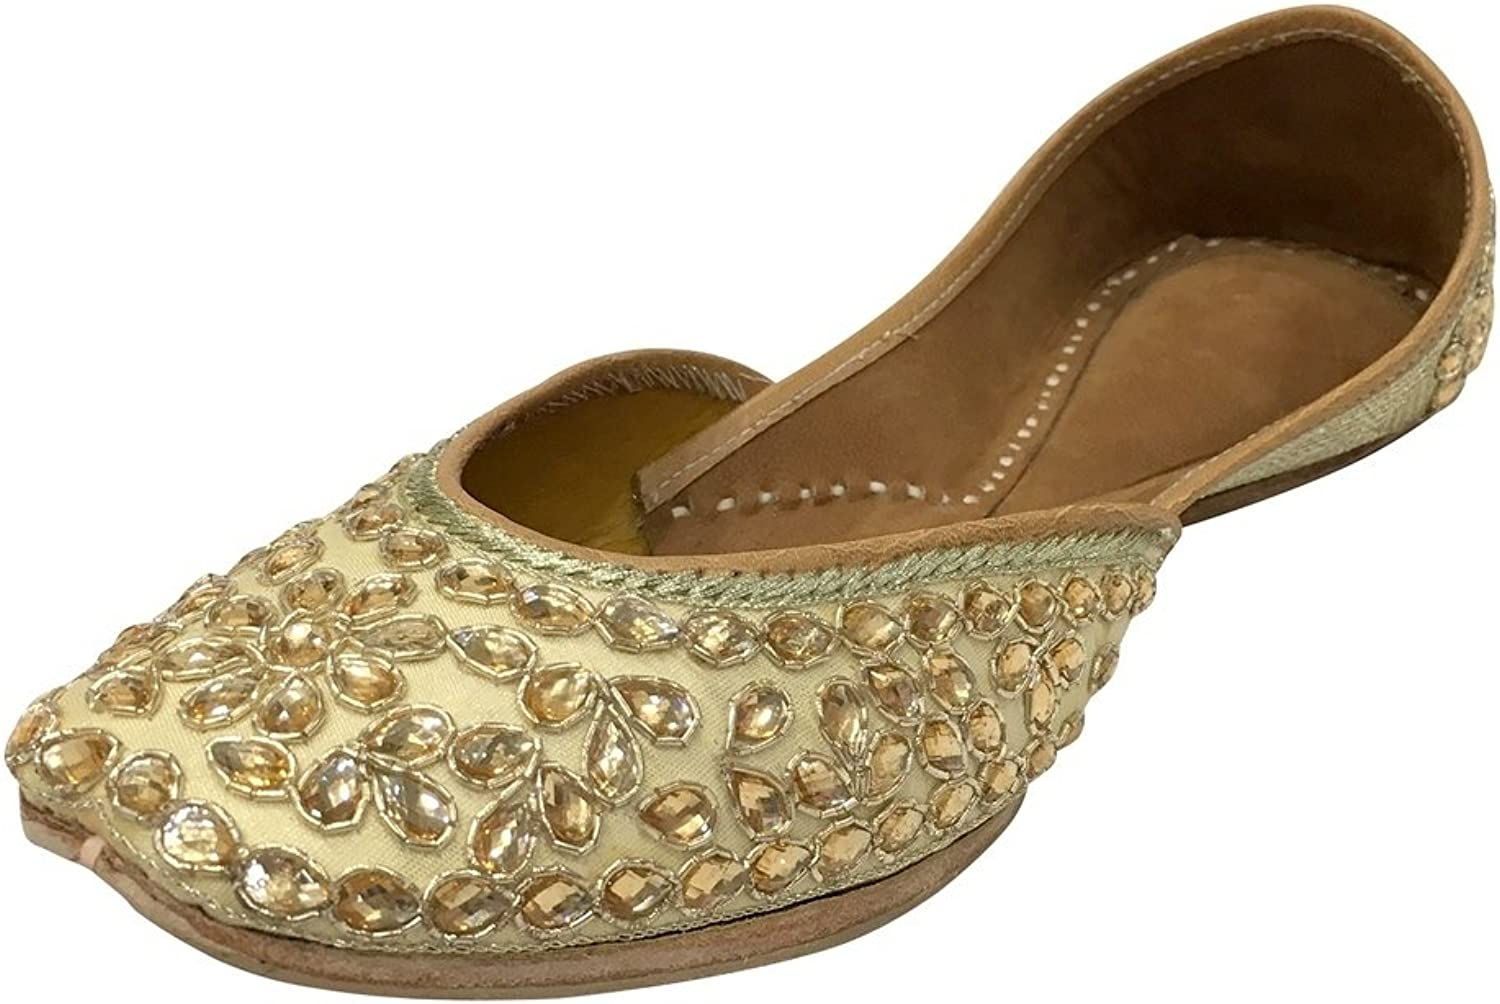 Step n Style Women Khusa Genuine Leather Sandal Indian Traditional Jutti Khussa shoes Cream gold